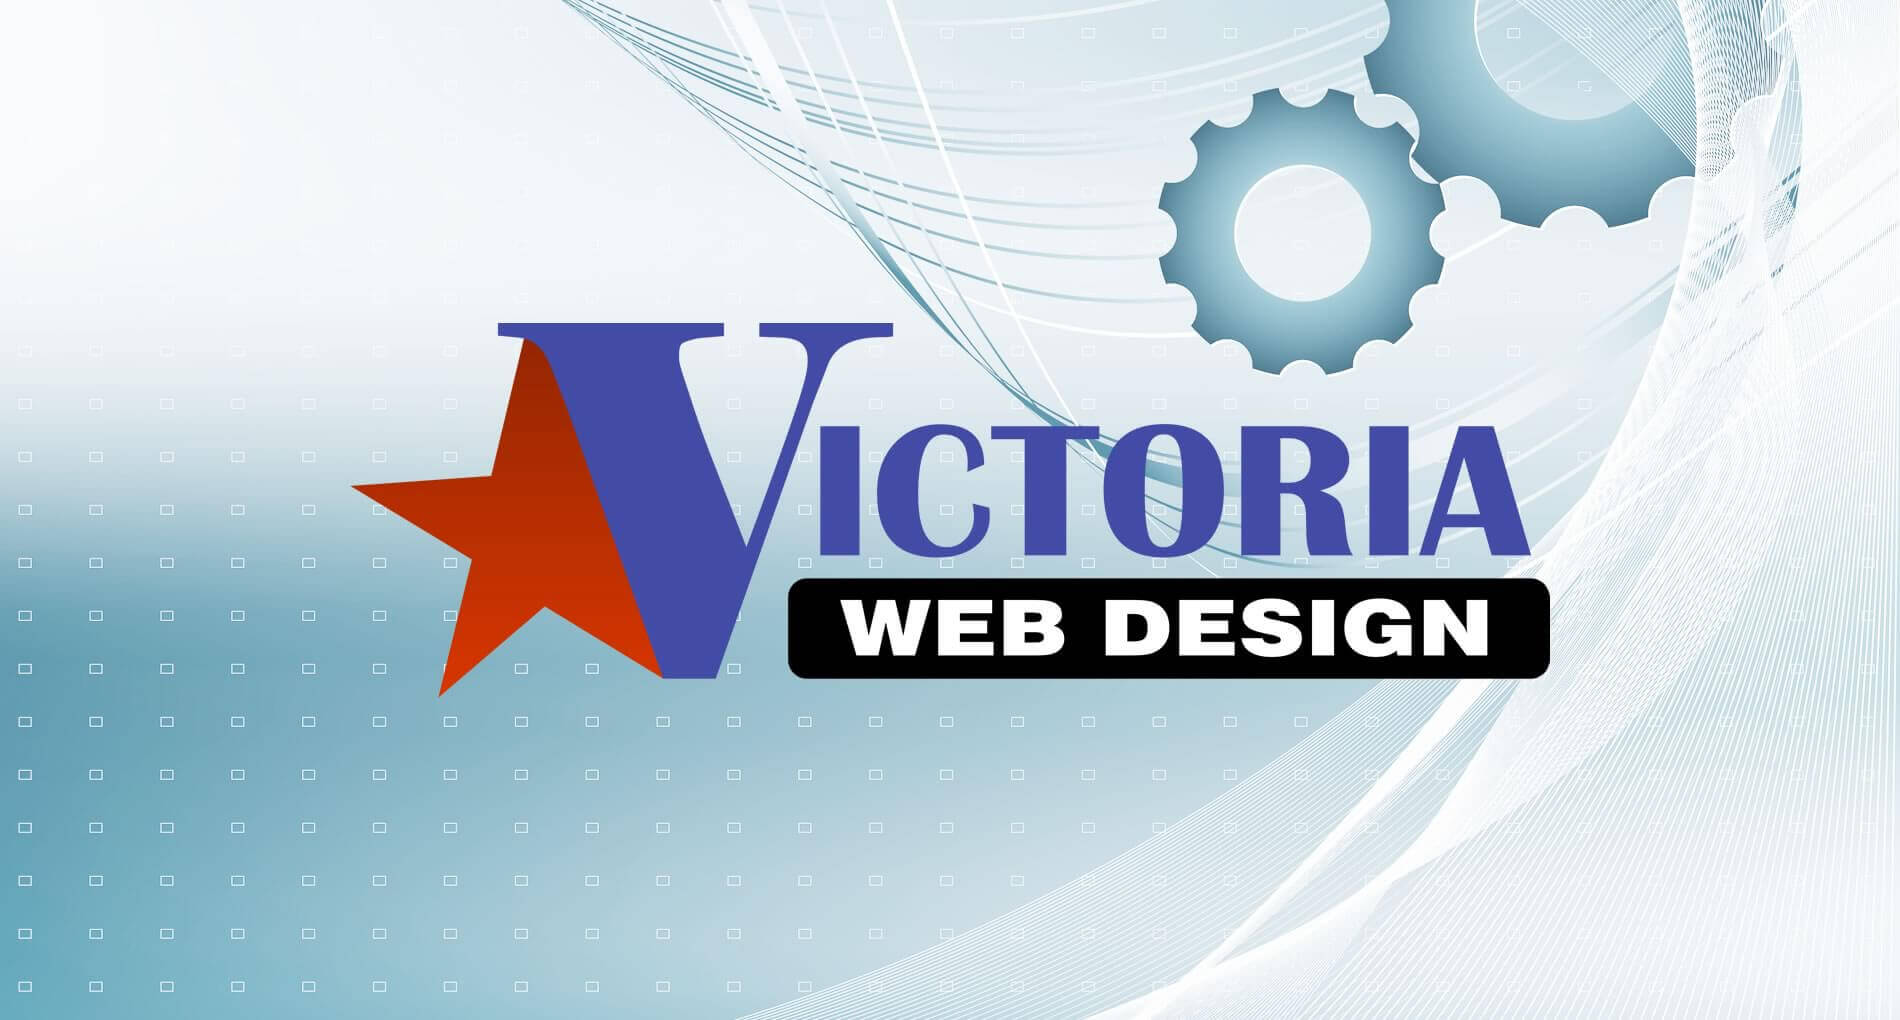 web design Plano Texas